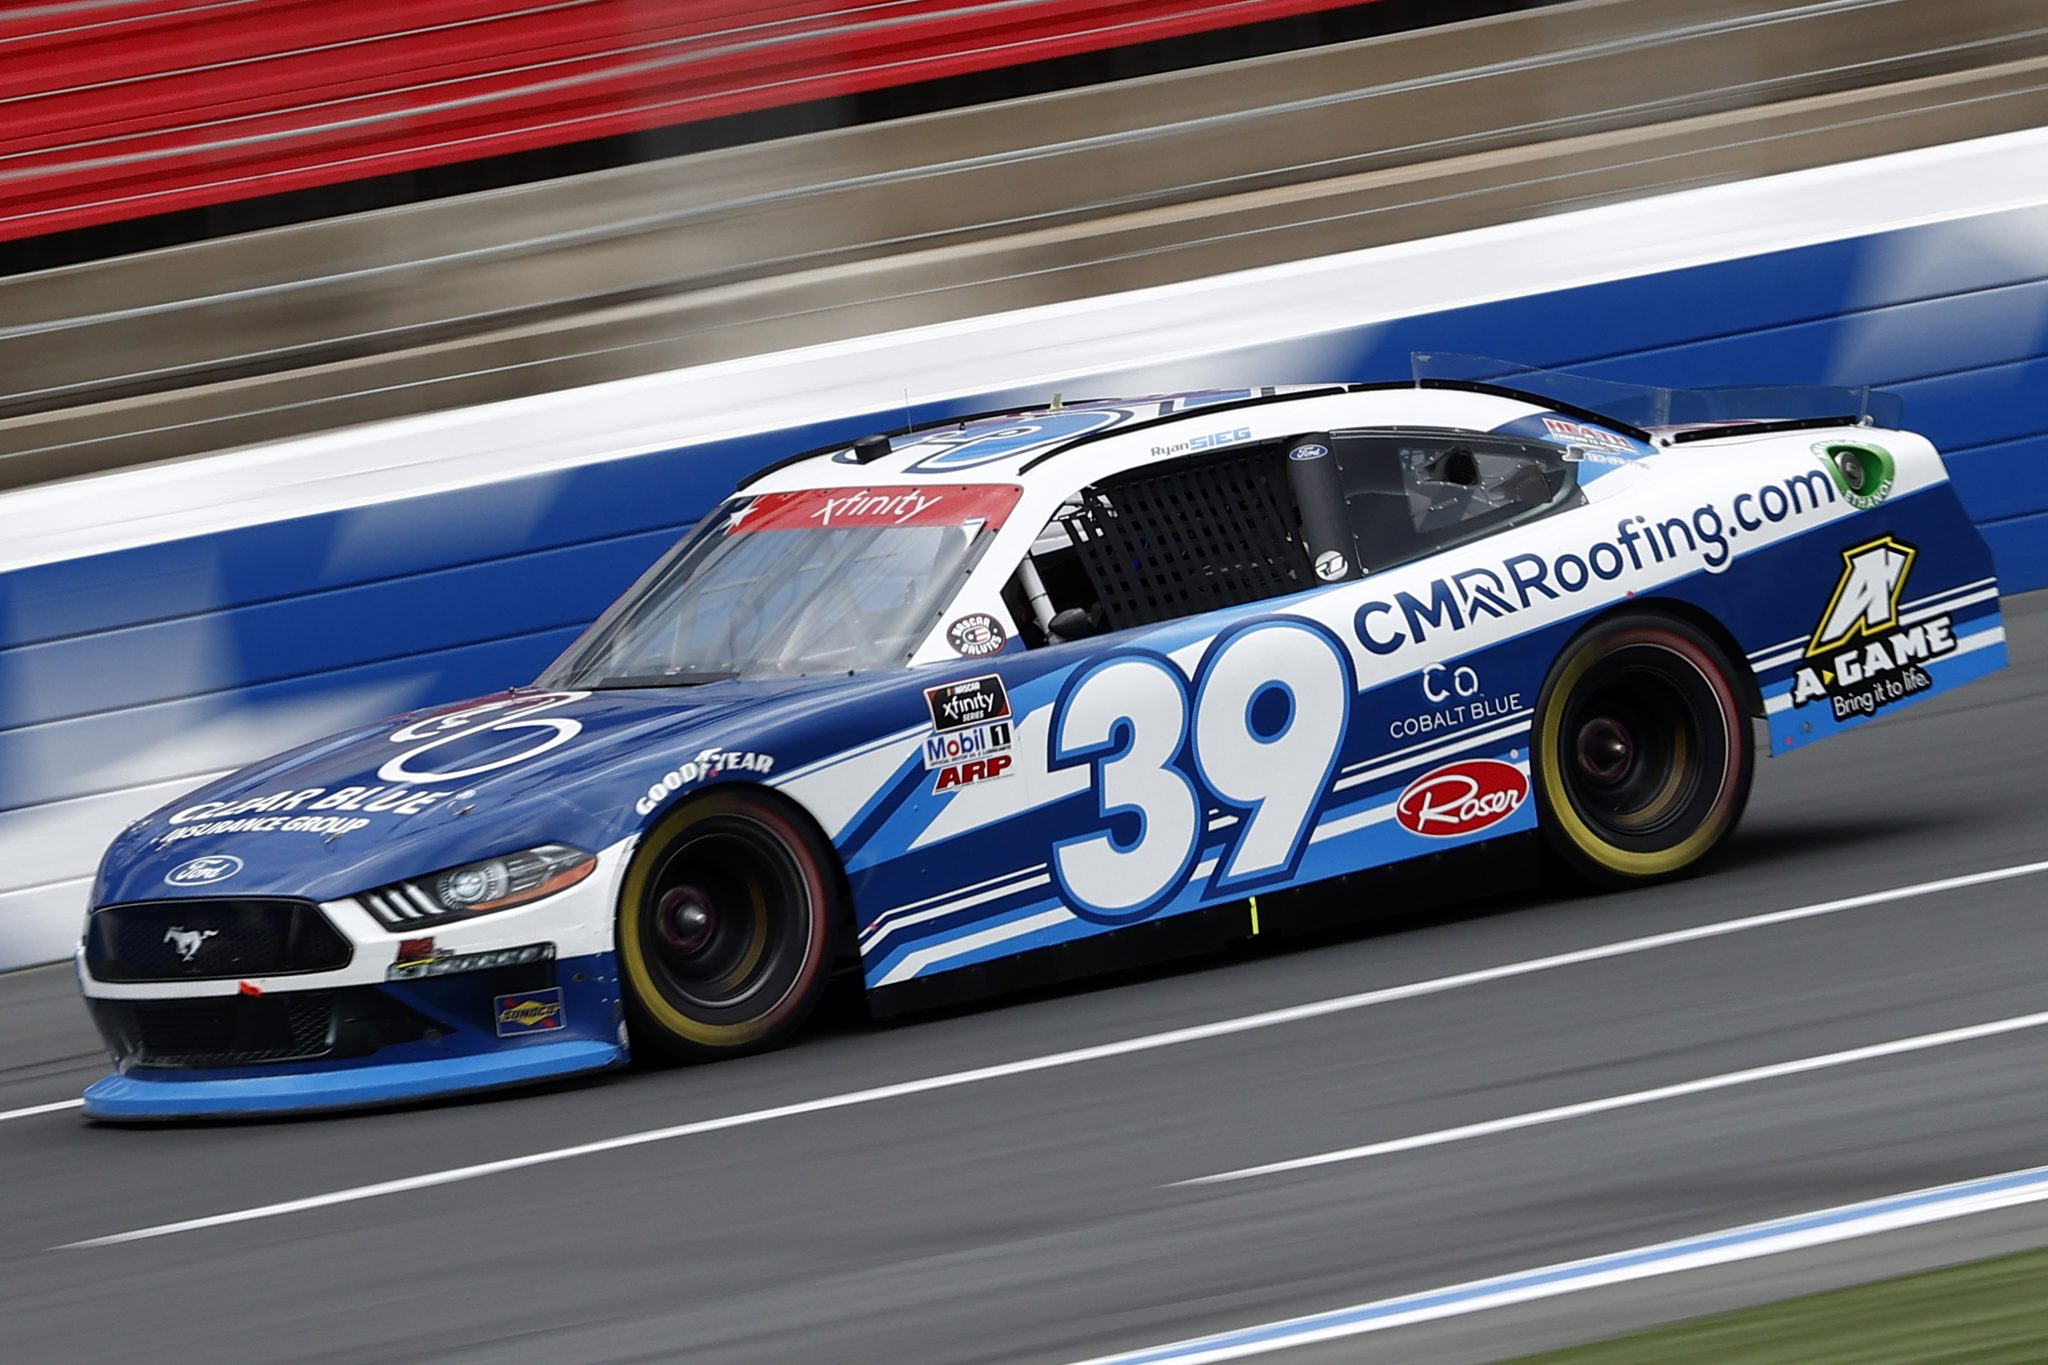 CONCORD, NORTH CAROLINA - MAY 28: Ryan Sieg, driver of the #39 CMR Construction and Roofing/A-Game Ford, drives during practice for the NASCAR Xfinity Series Alsco Uniforms 300 at Charlotte Motor Speedway on May 28, 2021 in Concord, North Carolina. (Photo by Maddie Meyer/Getty Images) | Getty Images